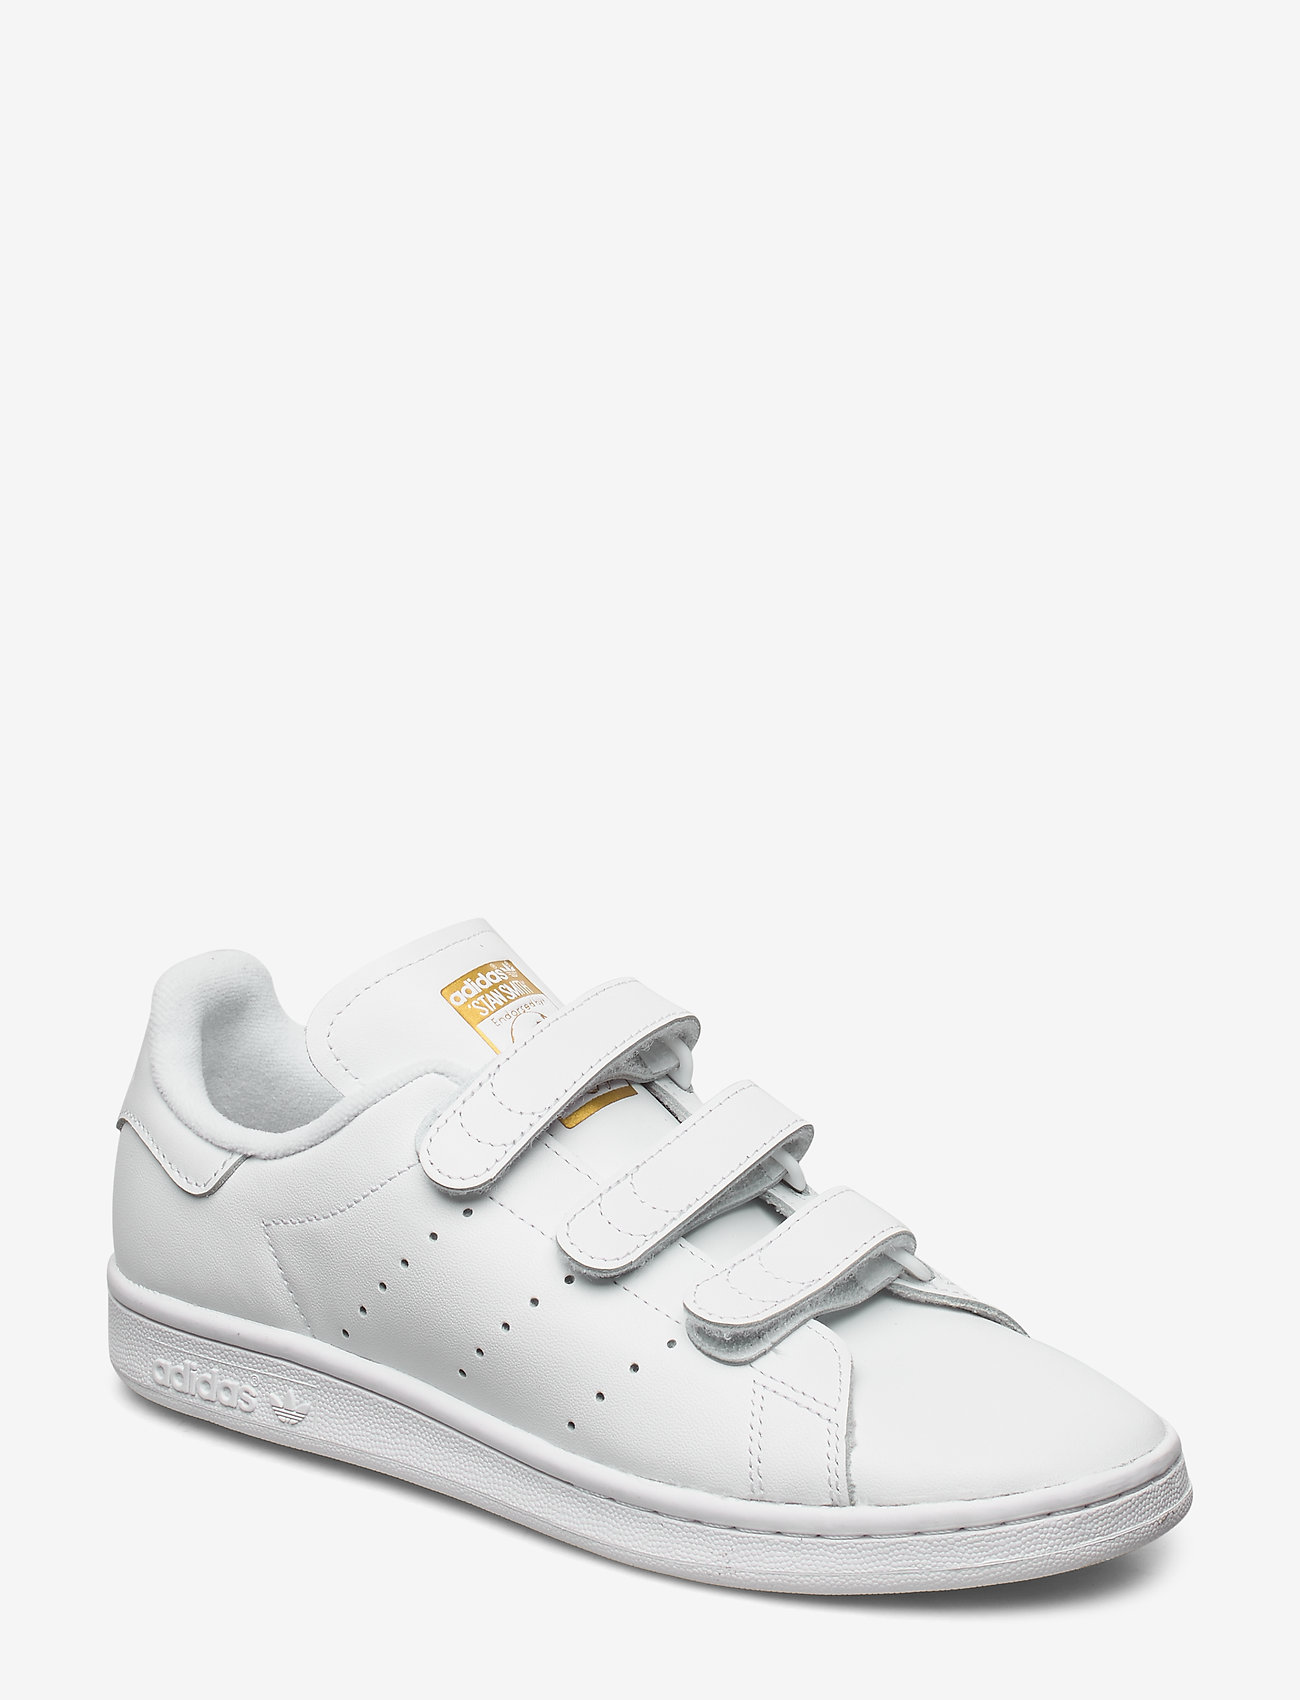 adidas Originals - STAN SMITH CF - lav ankel - ftwwht/ftwwht/goldmt - 0